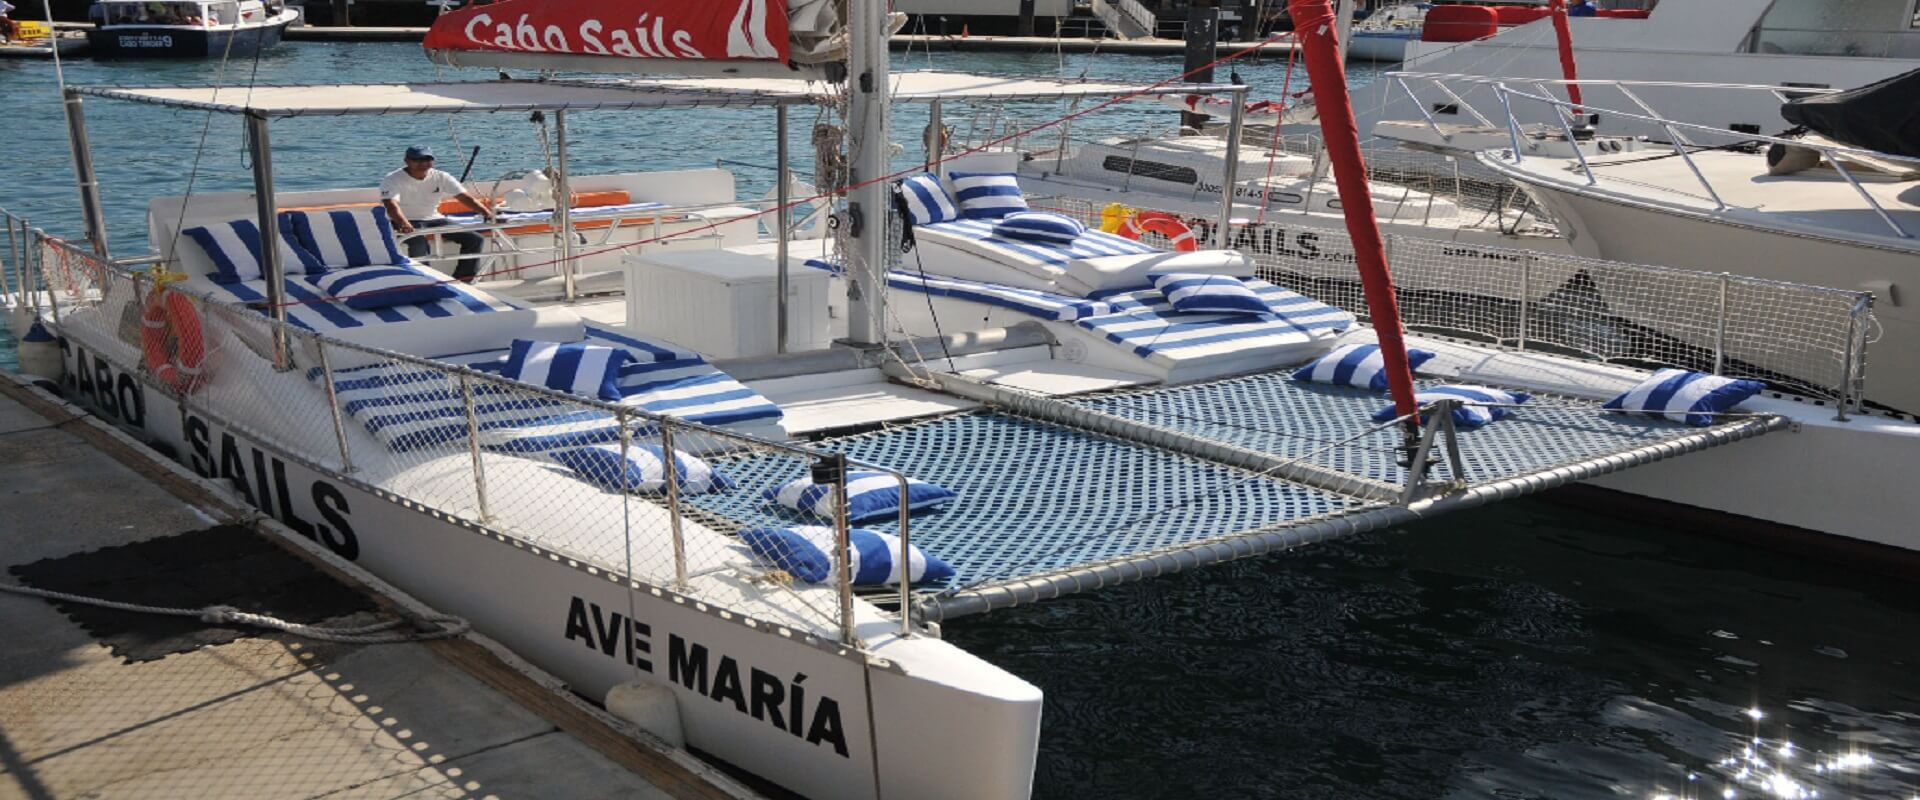 37' Ave Maria Catamaran (Our Roomiest Boat)